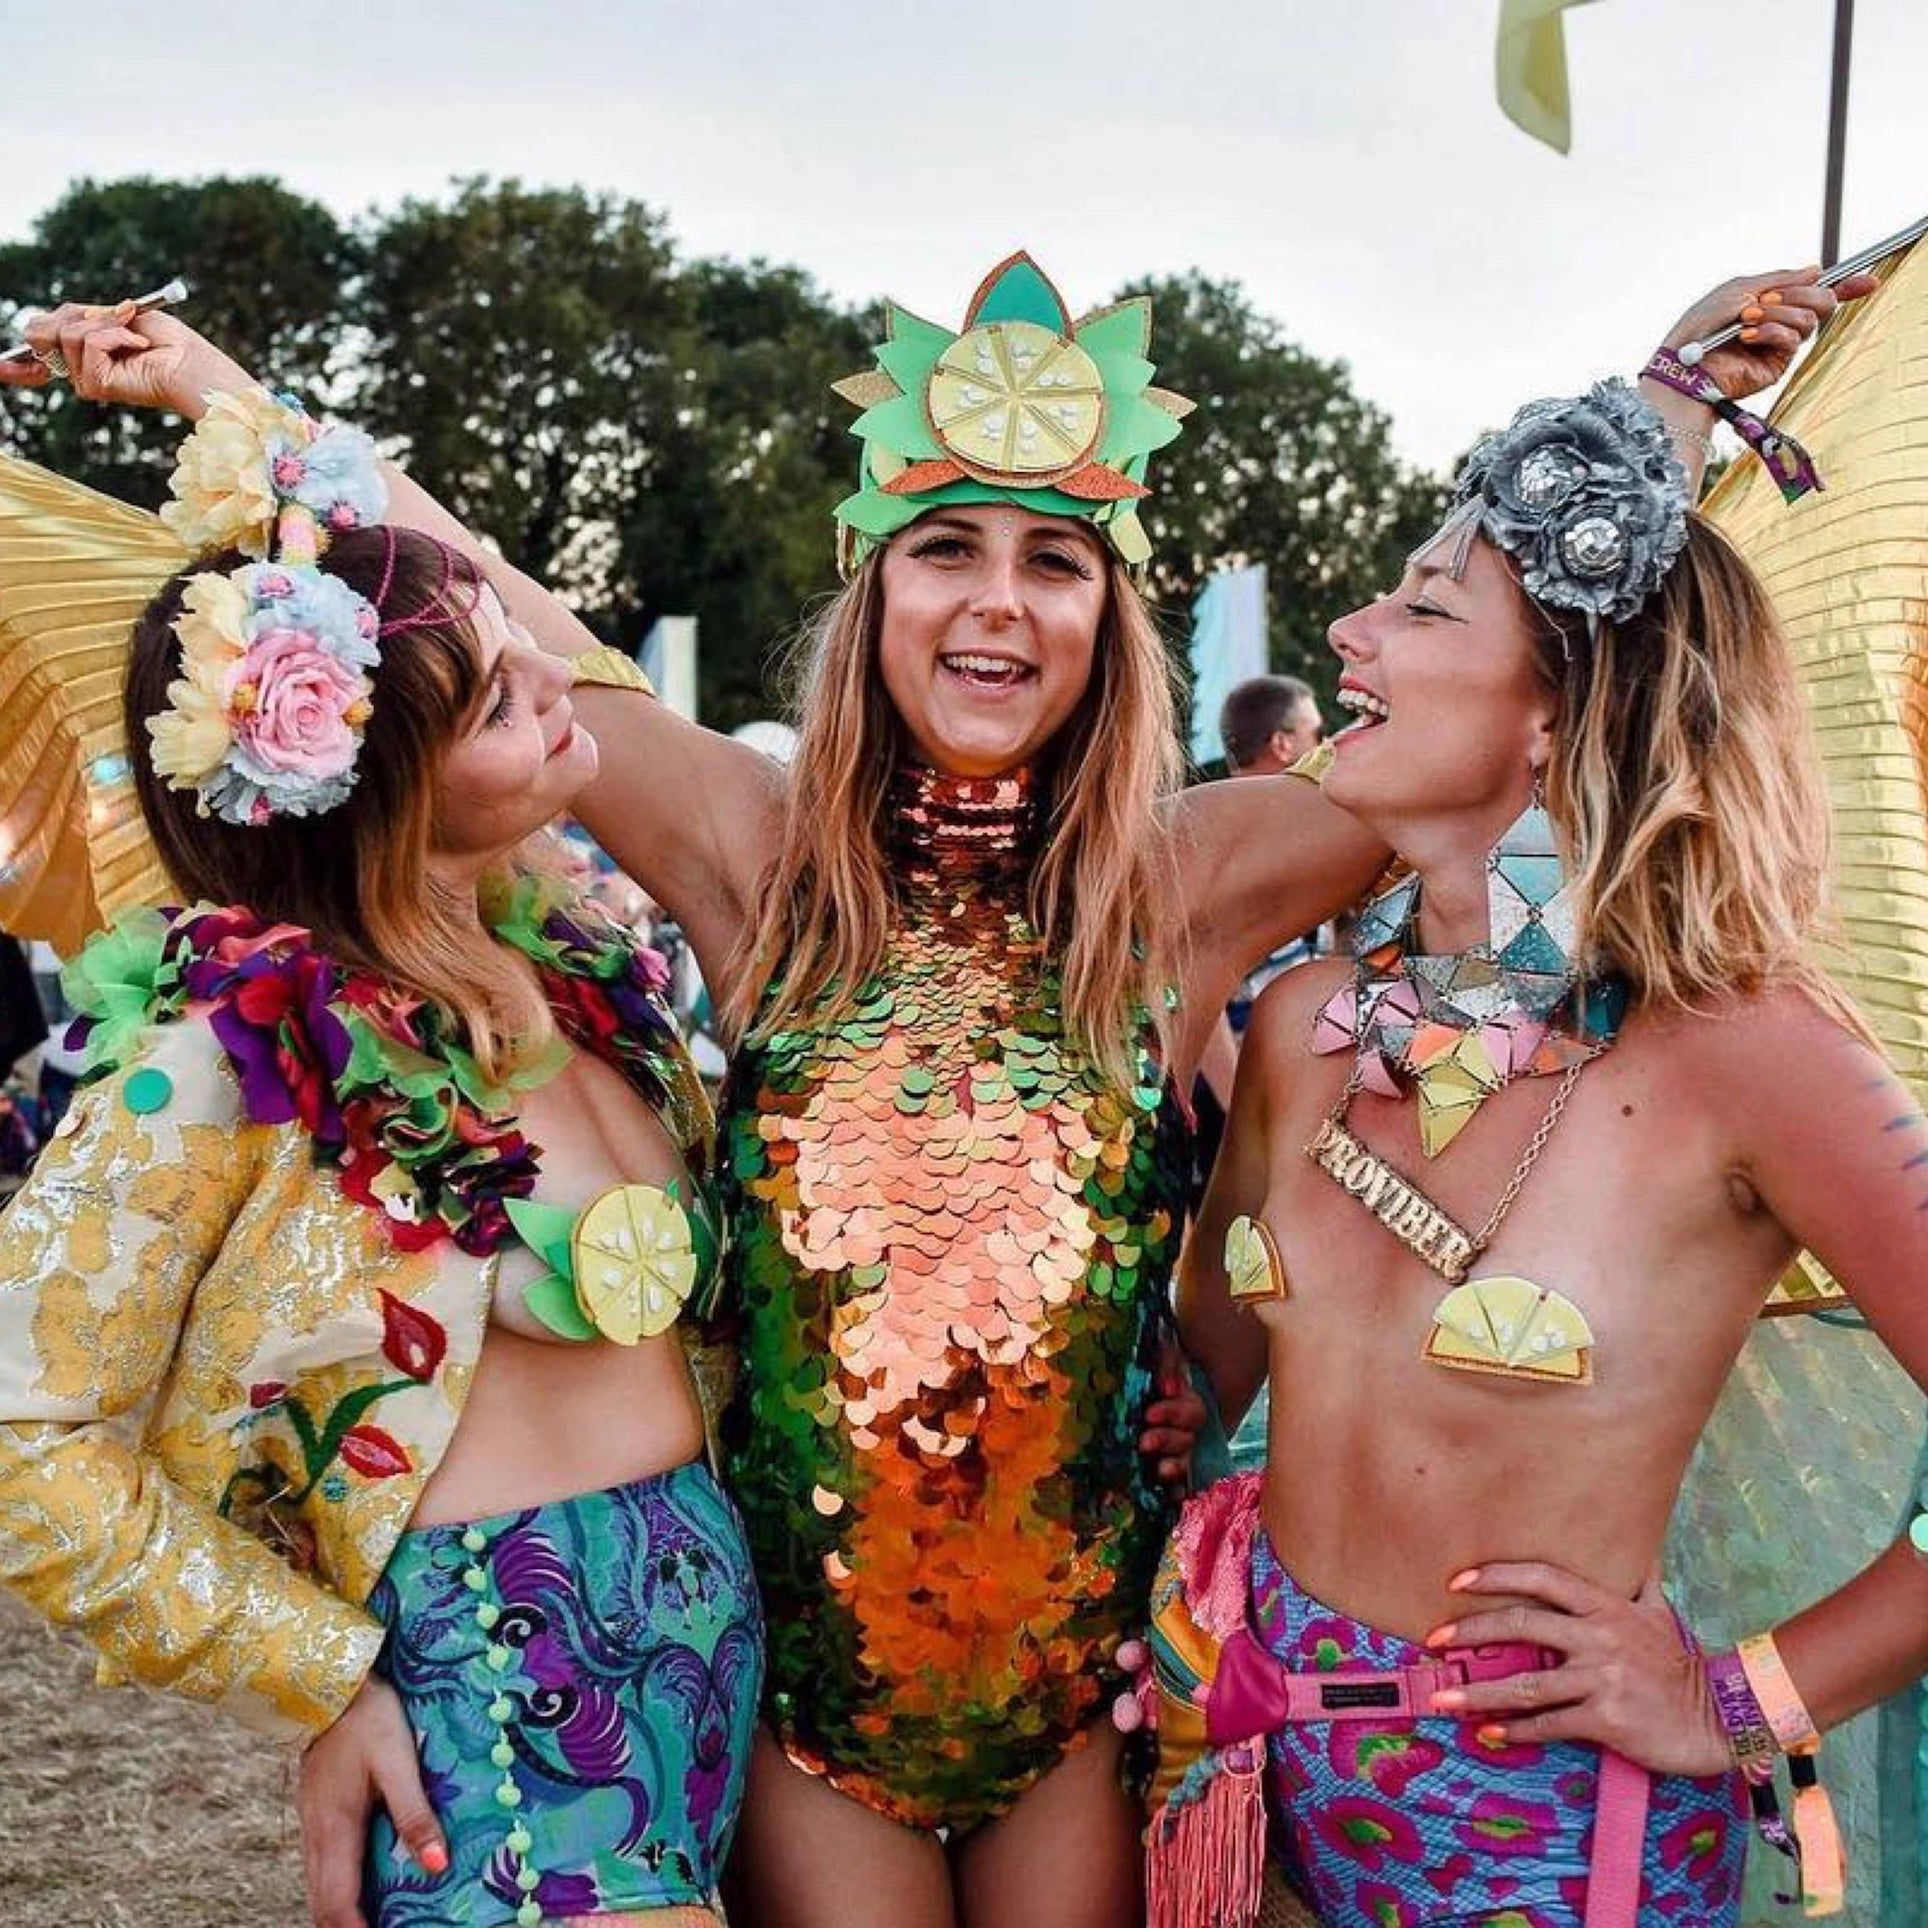 Three friends in sequin clothing at a festival